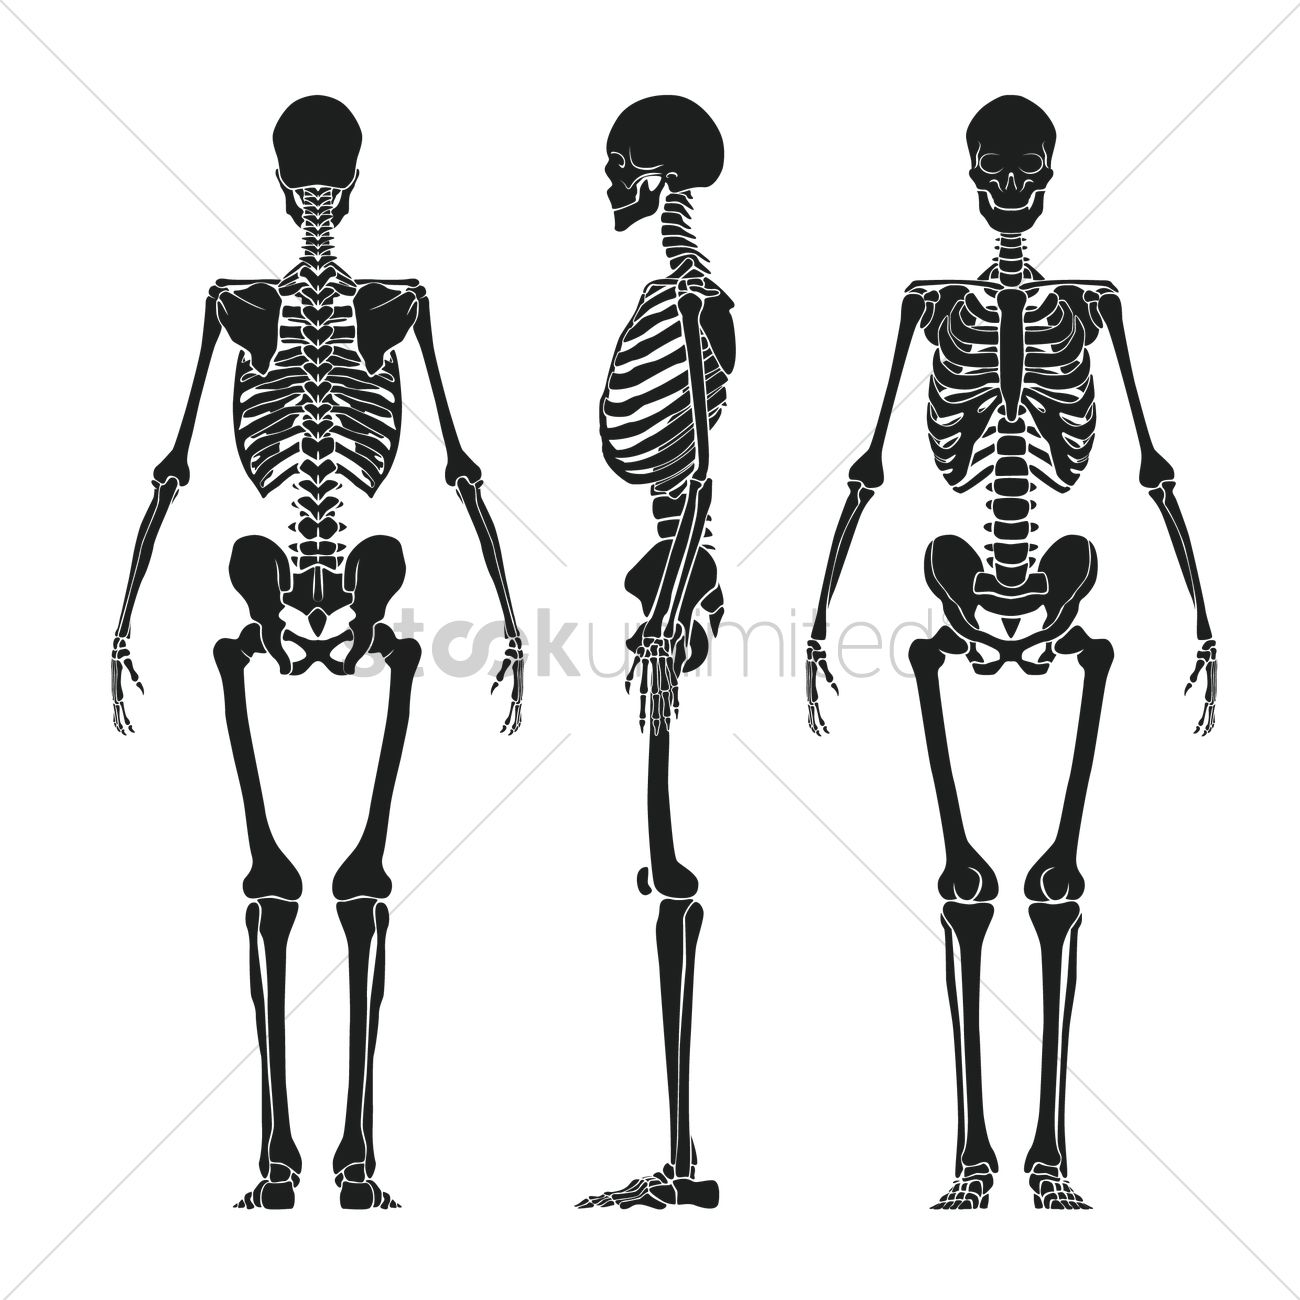 Human Skeleton Vector Image 1516131 Stockunlimited